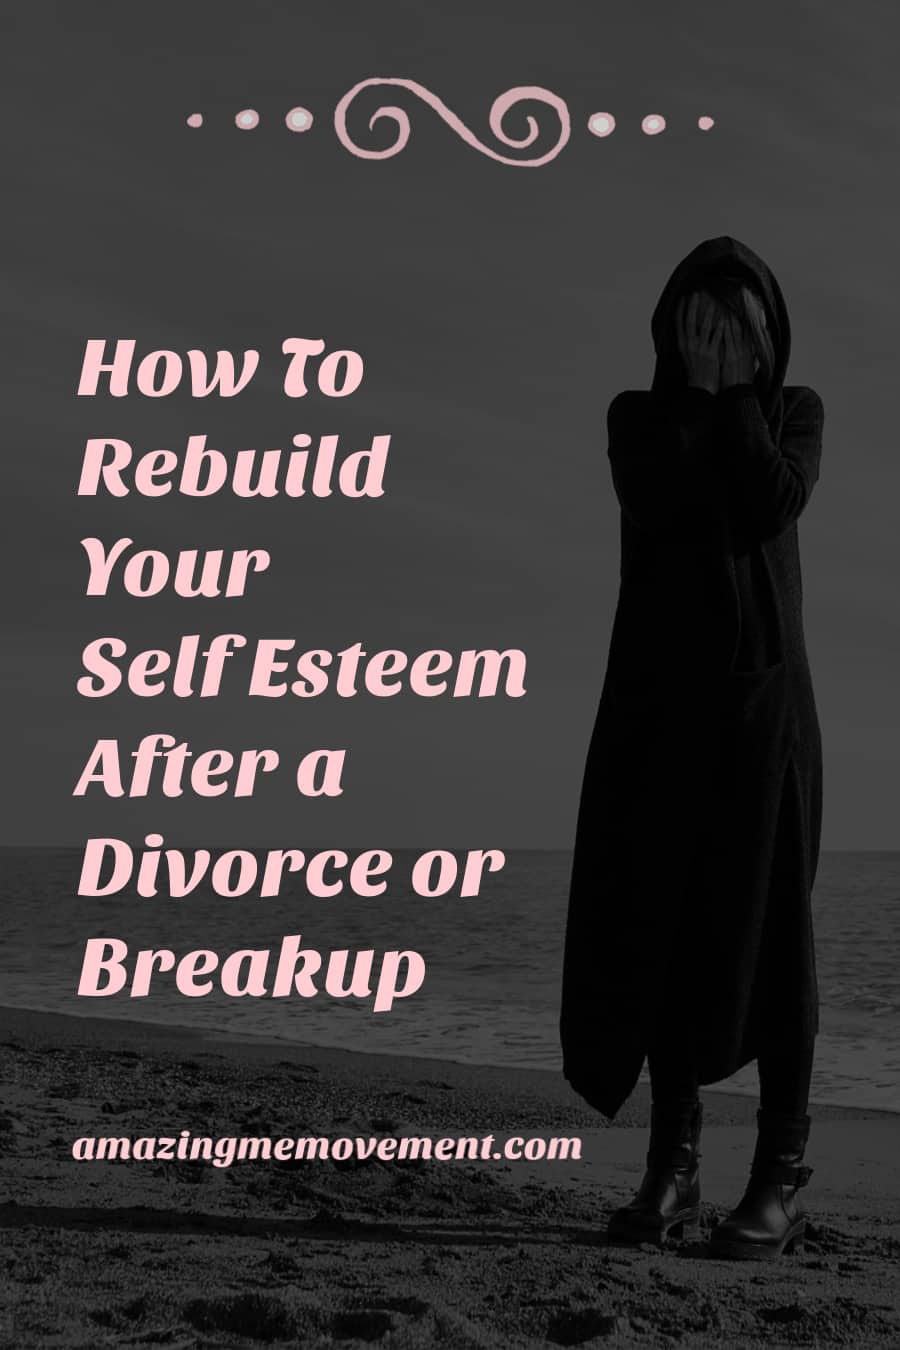 How to rebuild your self esteem after a divorce or breakup